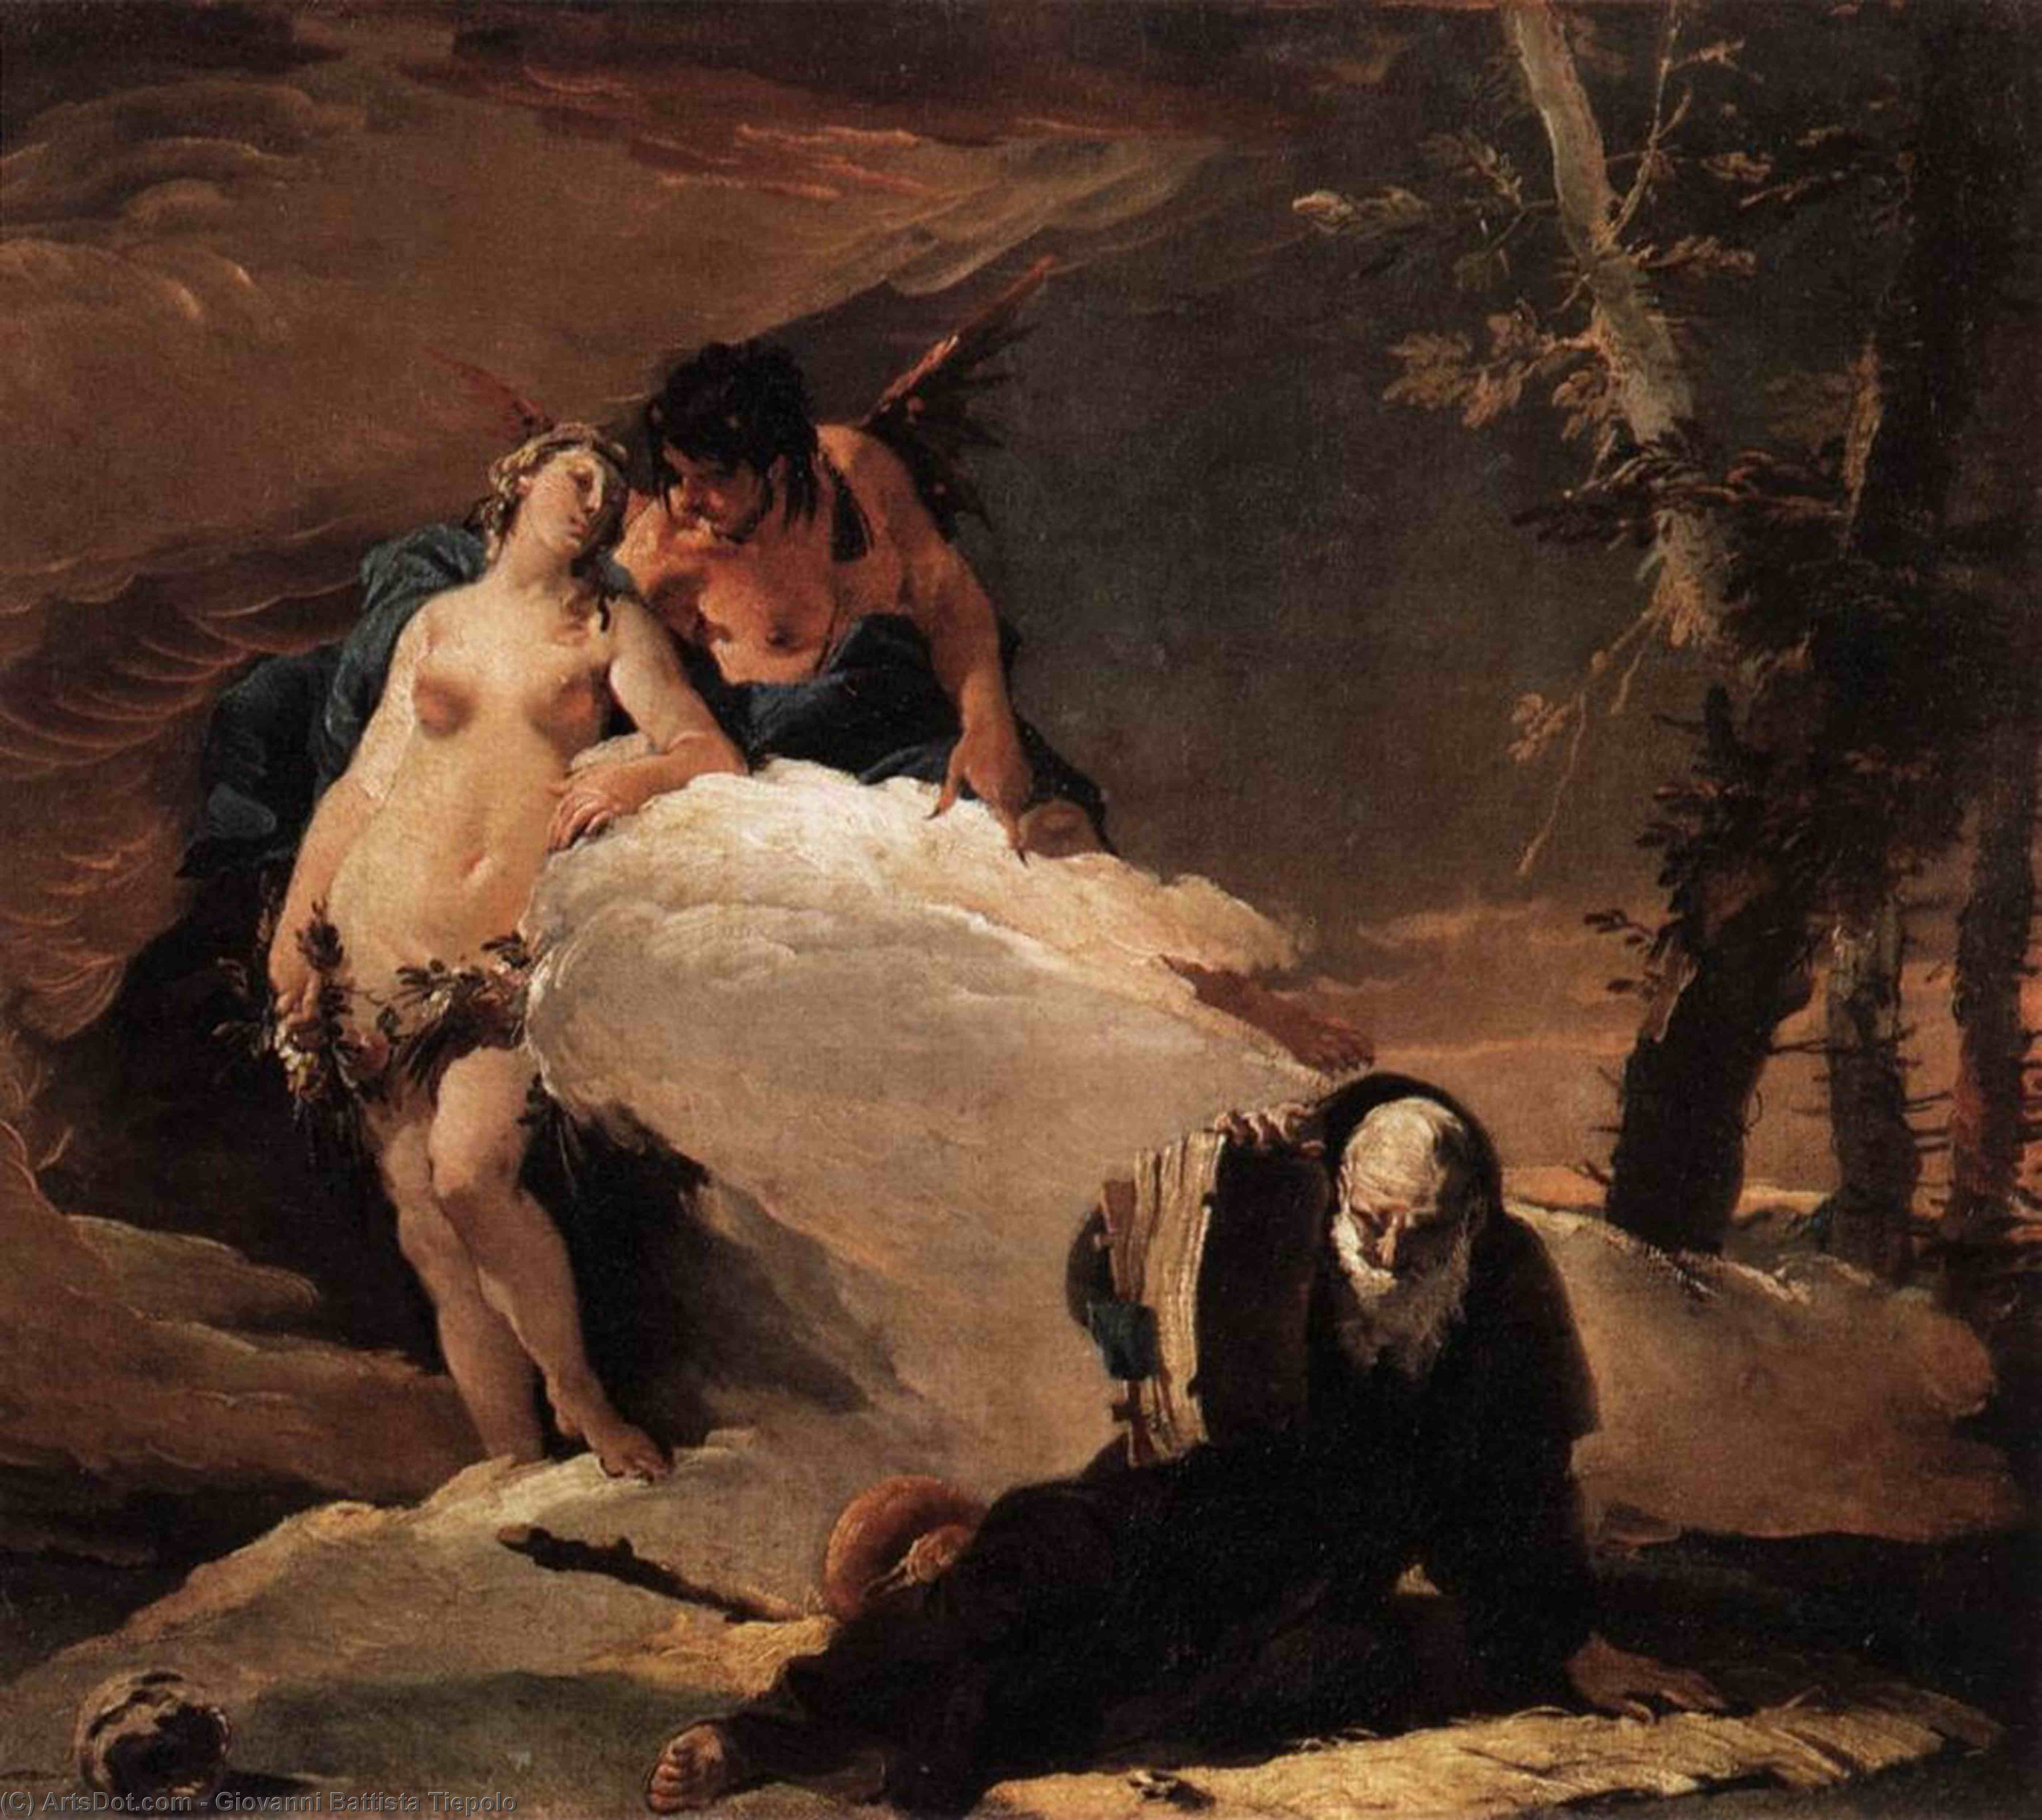 Wikioo.org - The Encyclopedia of Fine Arts - Painting, Artwork by Giovanni Battista Tiepolo - Temptations of St Anthony